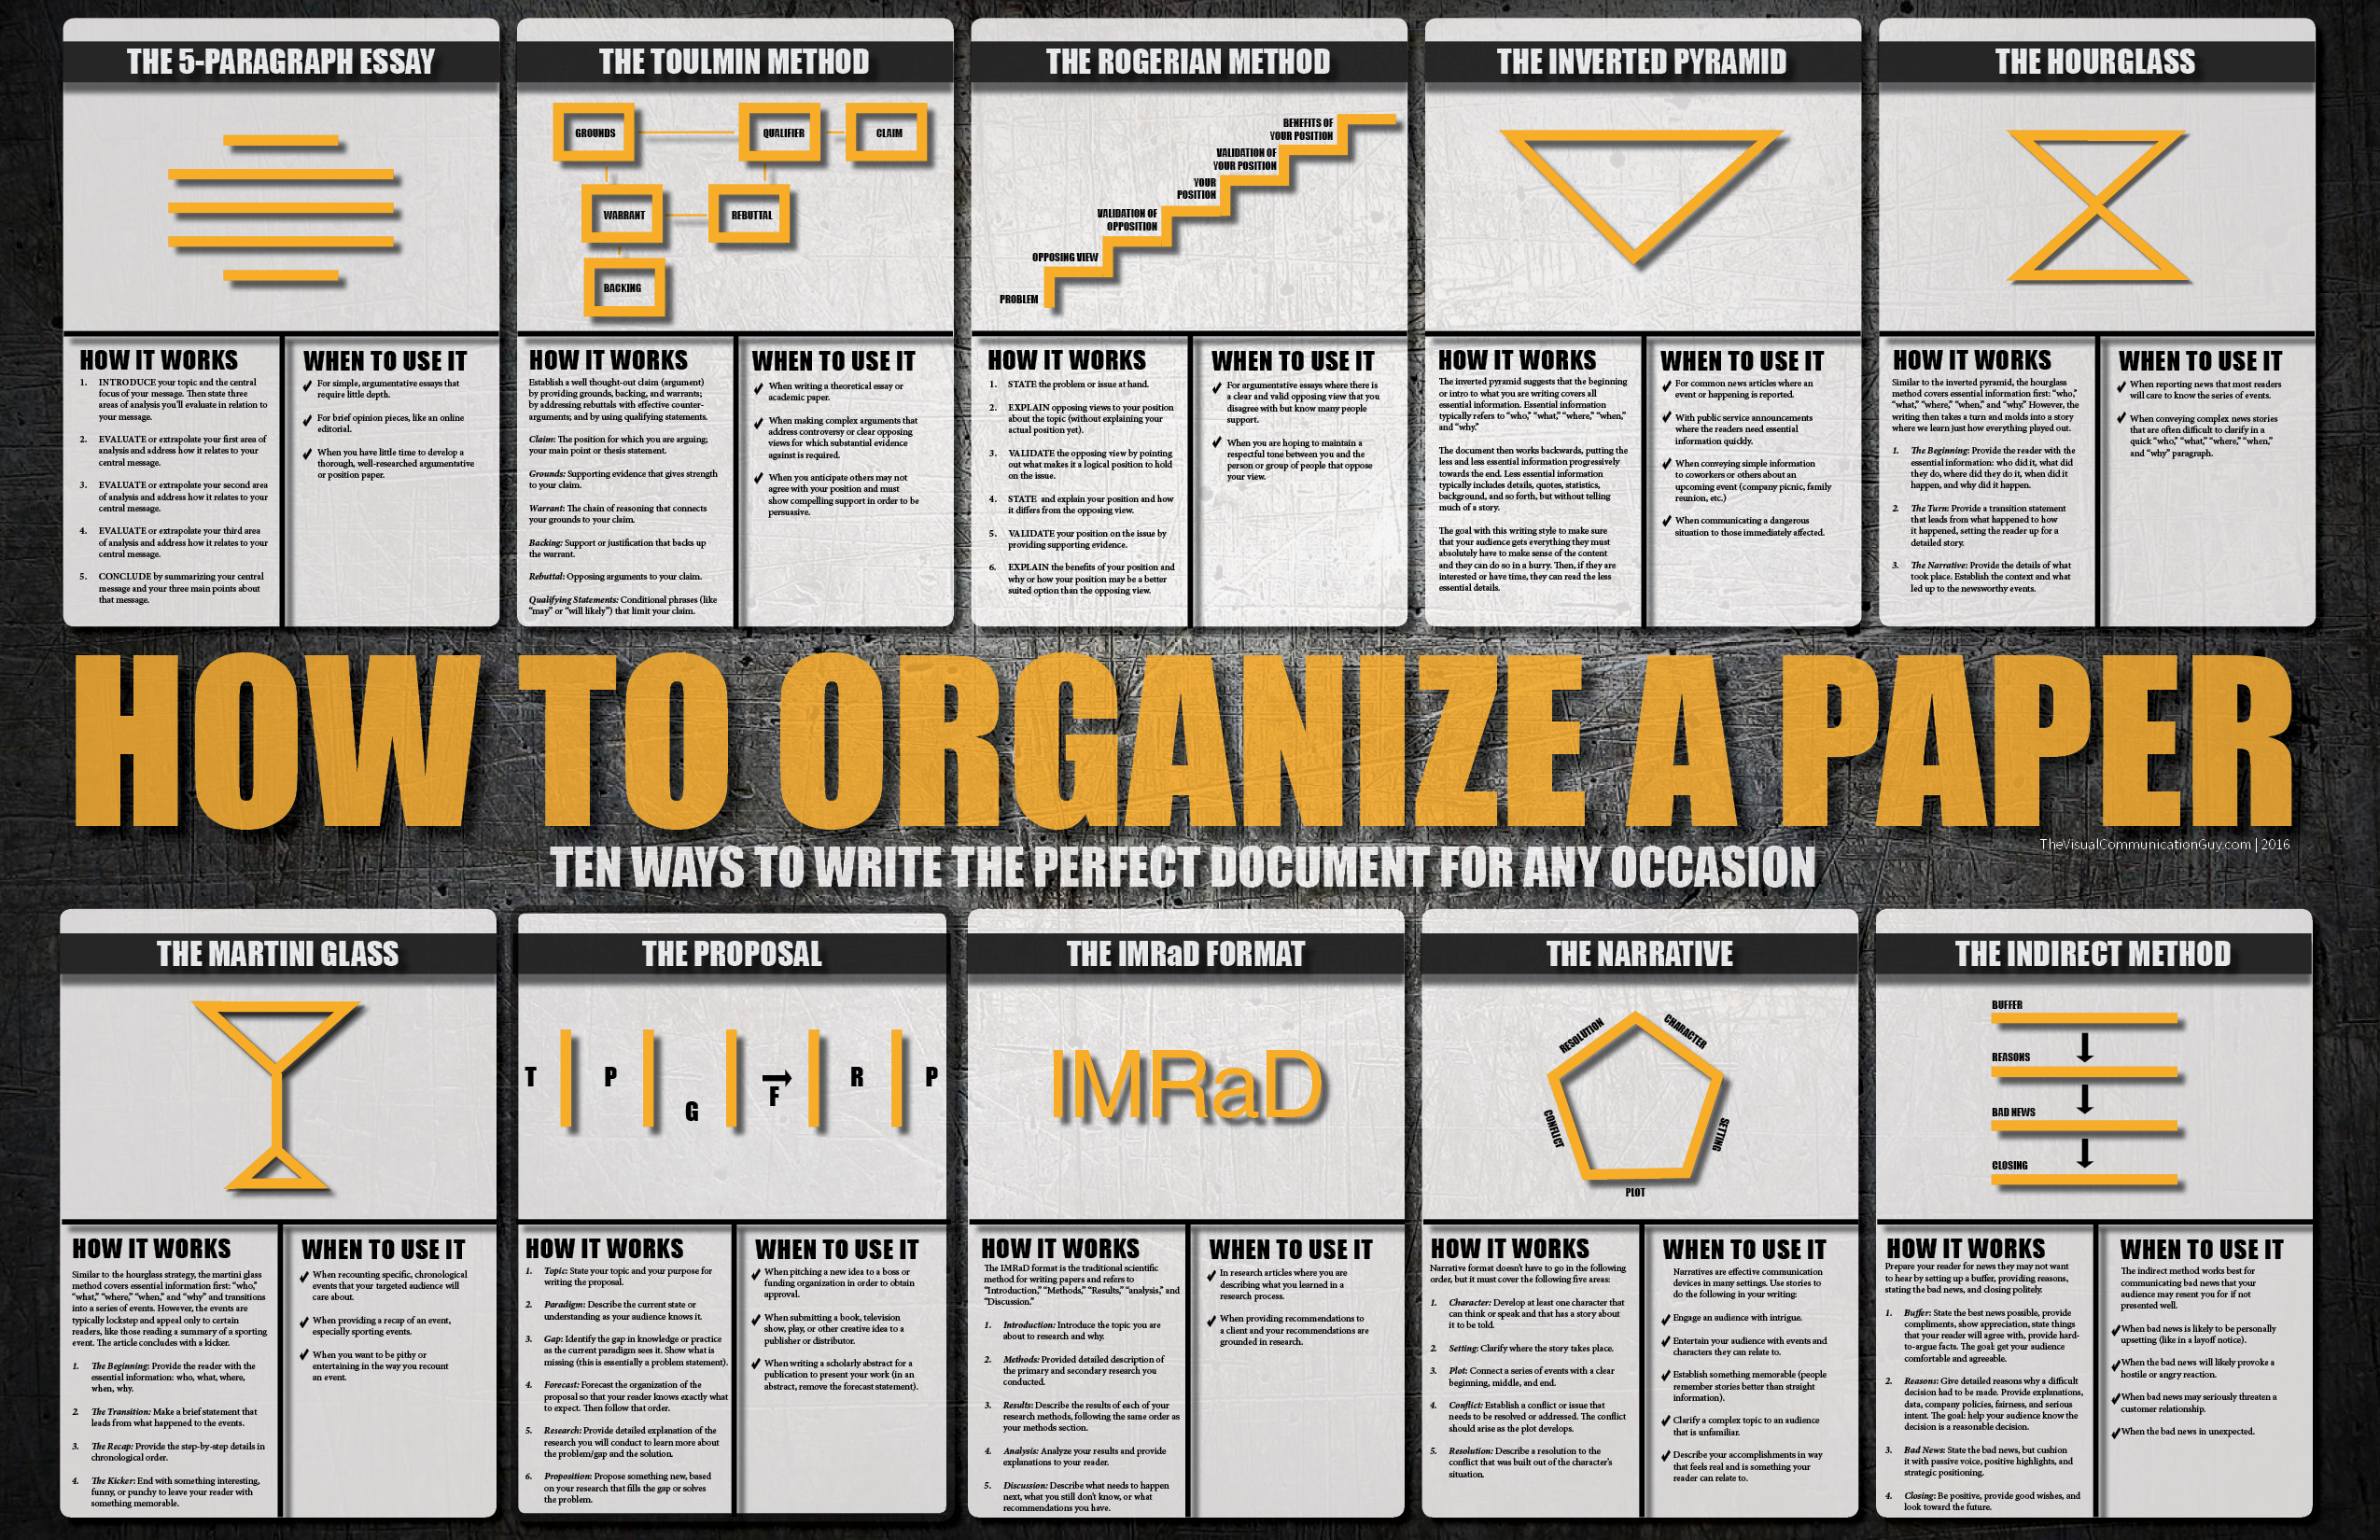 how to organize a paper  ten ways to write the perfect document  u2013 the visual communication guy